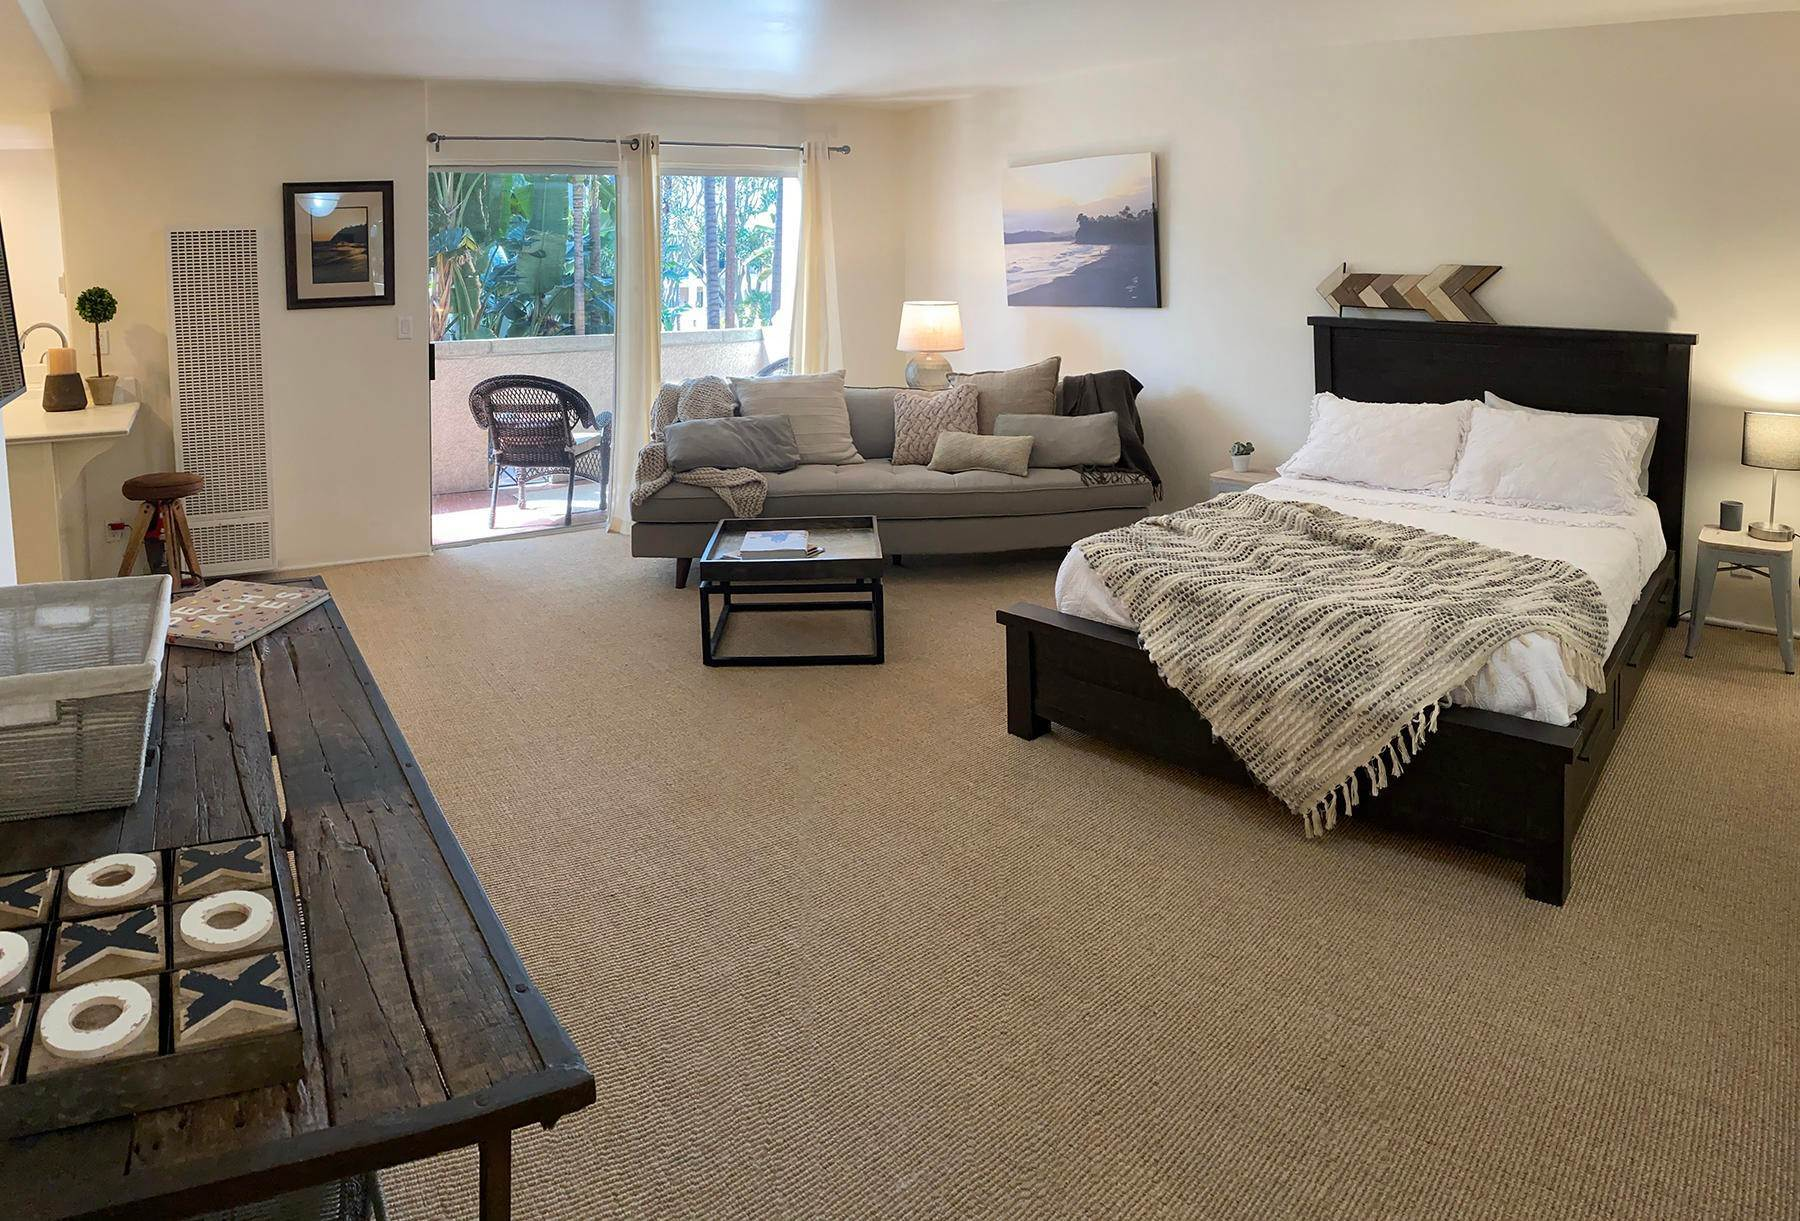 Co-op / Condo for Sale at 239 Por La Mar Circle Santa Barbara, California 93103 United States